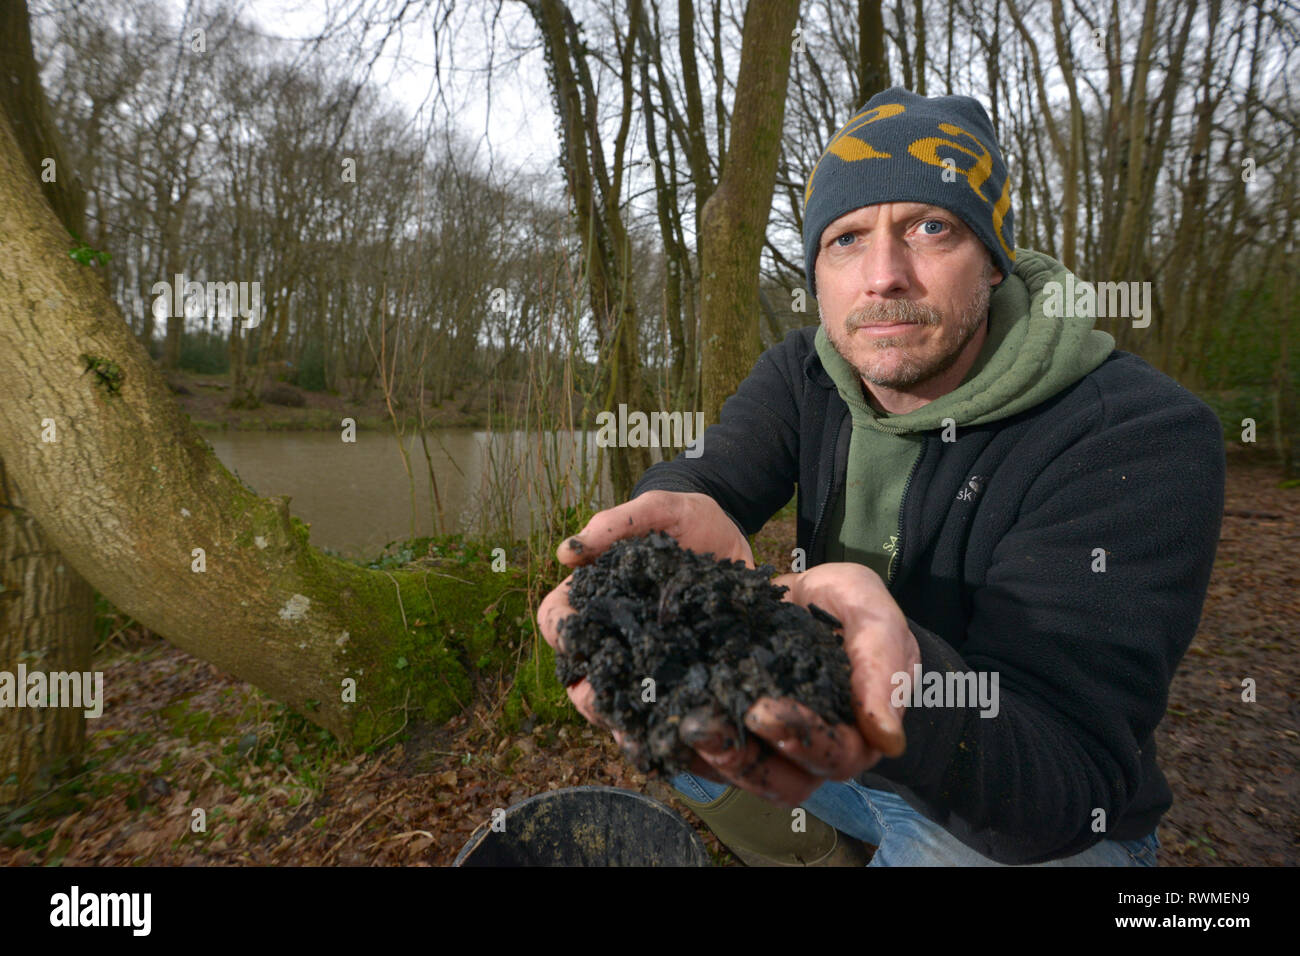 Phil Greenwood of Sacred Earth, Horam, East Sussex, with biochar - a natural soil enrichment that could help suppress ash dieback disease. Stock Photo